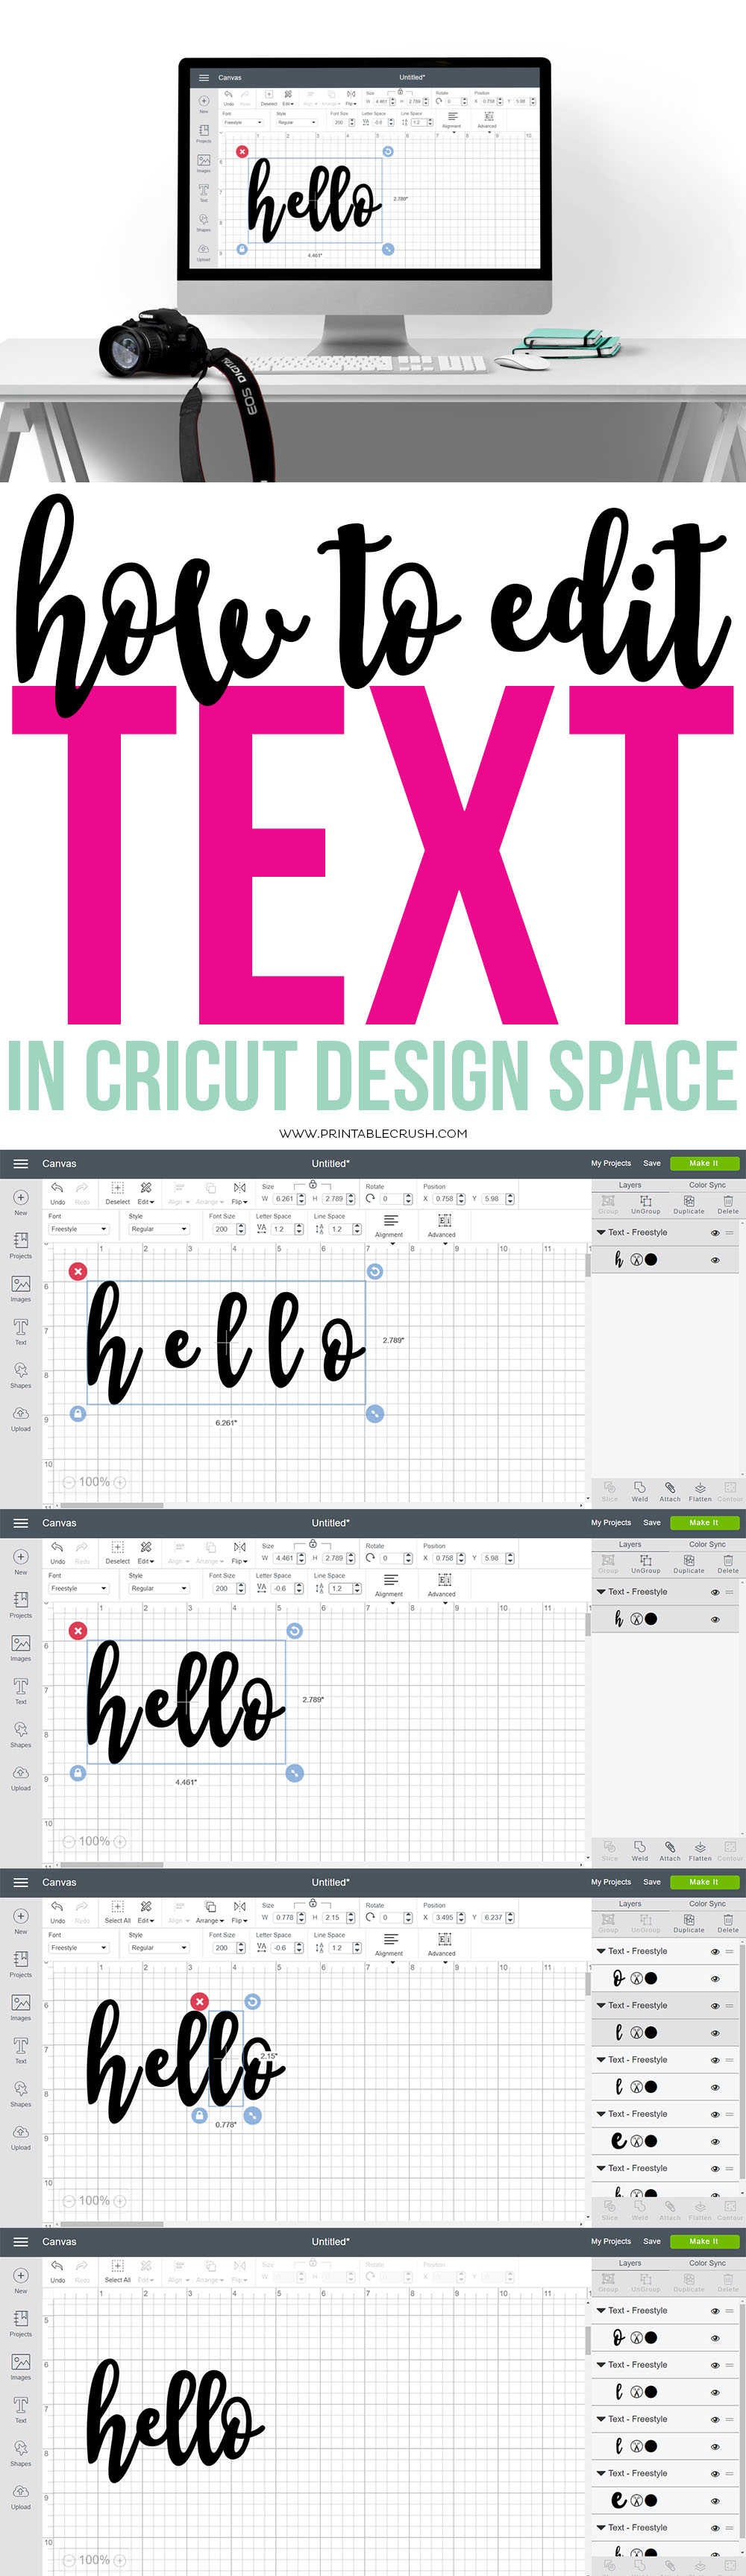 Cricut Design Space - Easily Edit Fonts Using This Tutorial